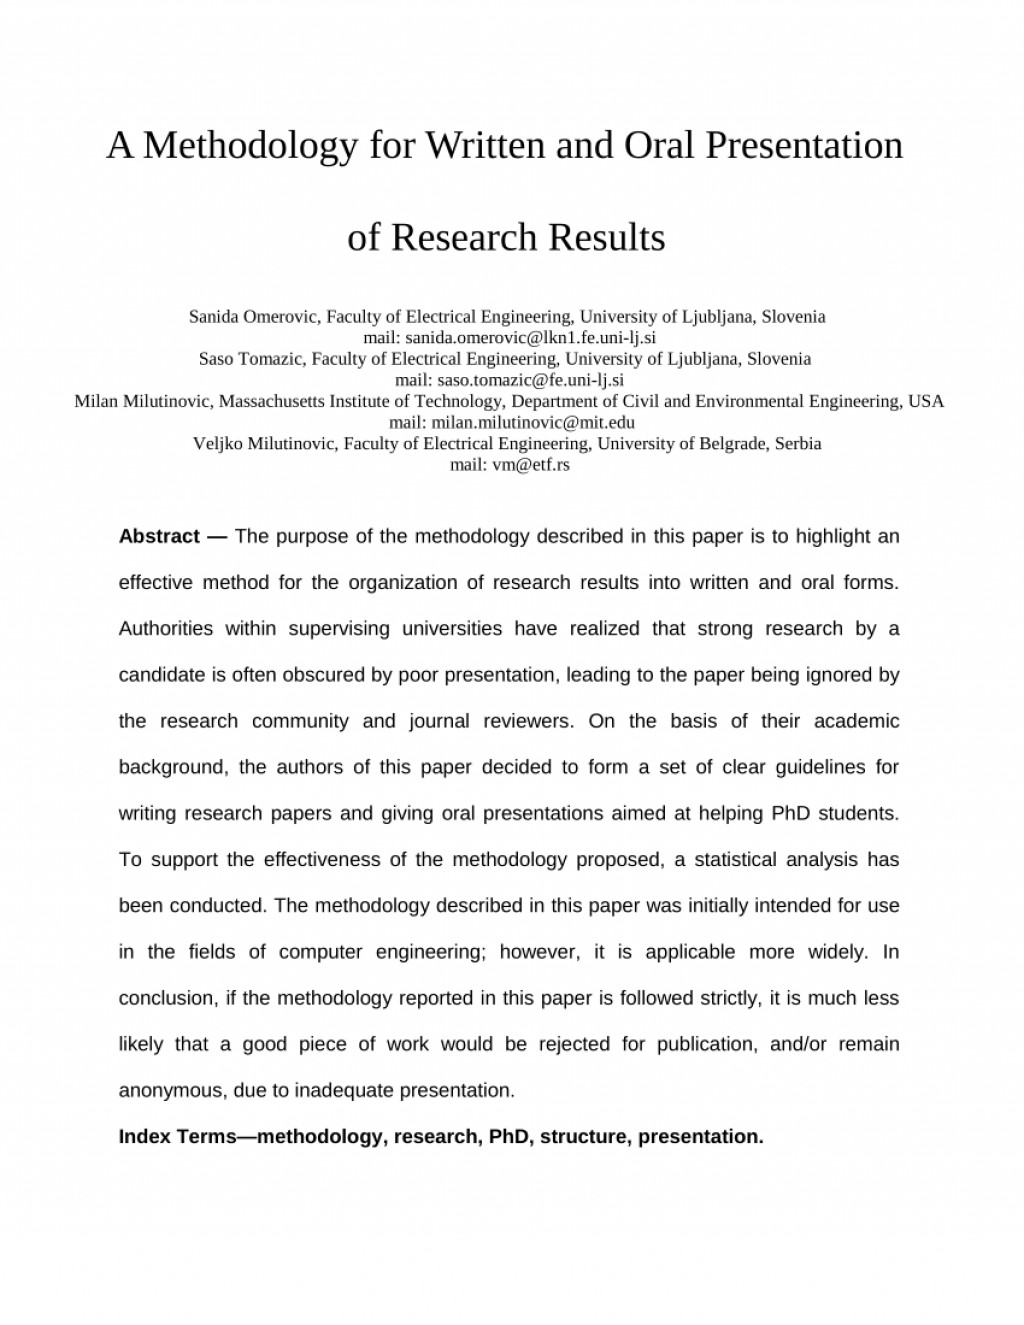 001 Methodology Research Paper Remarkable Topics Pattern Exam Pdf Large